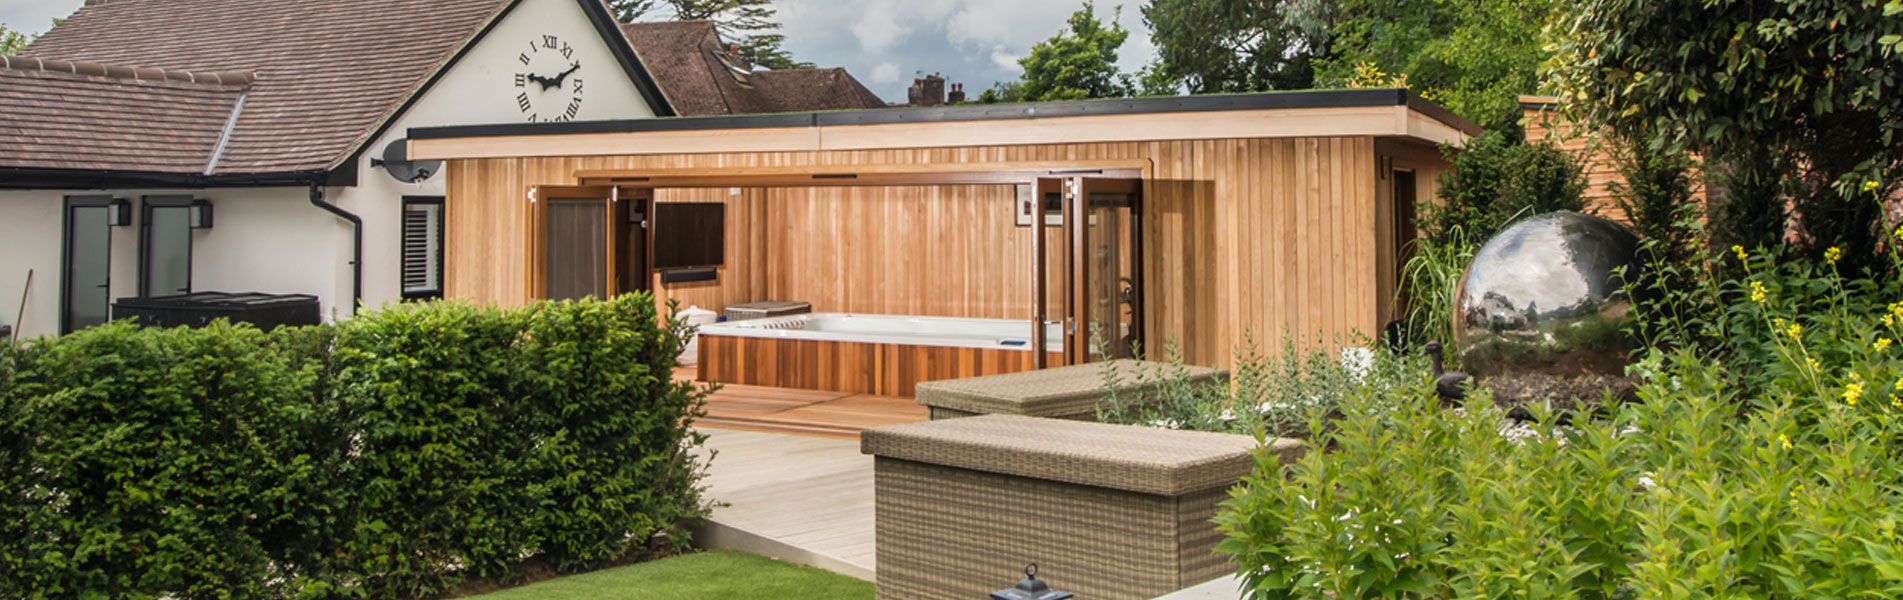 Luxury garden room designs available from Crown Pavilions